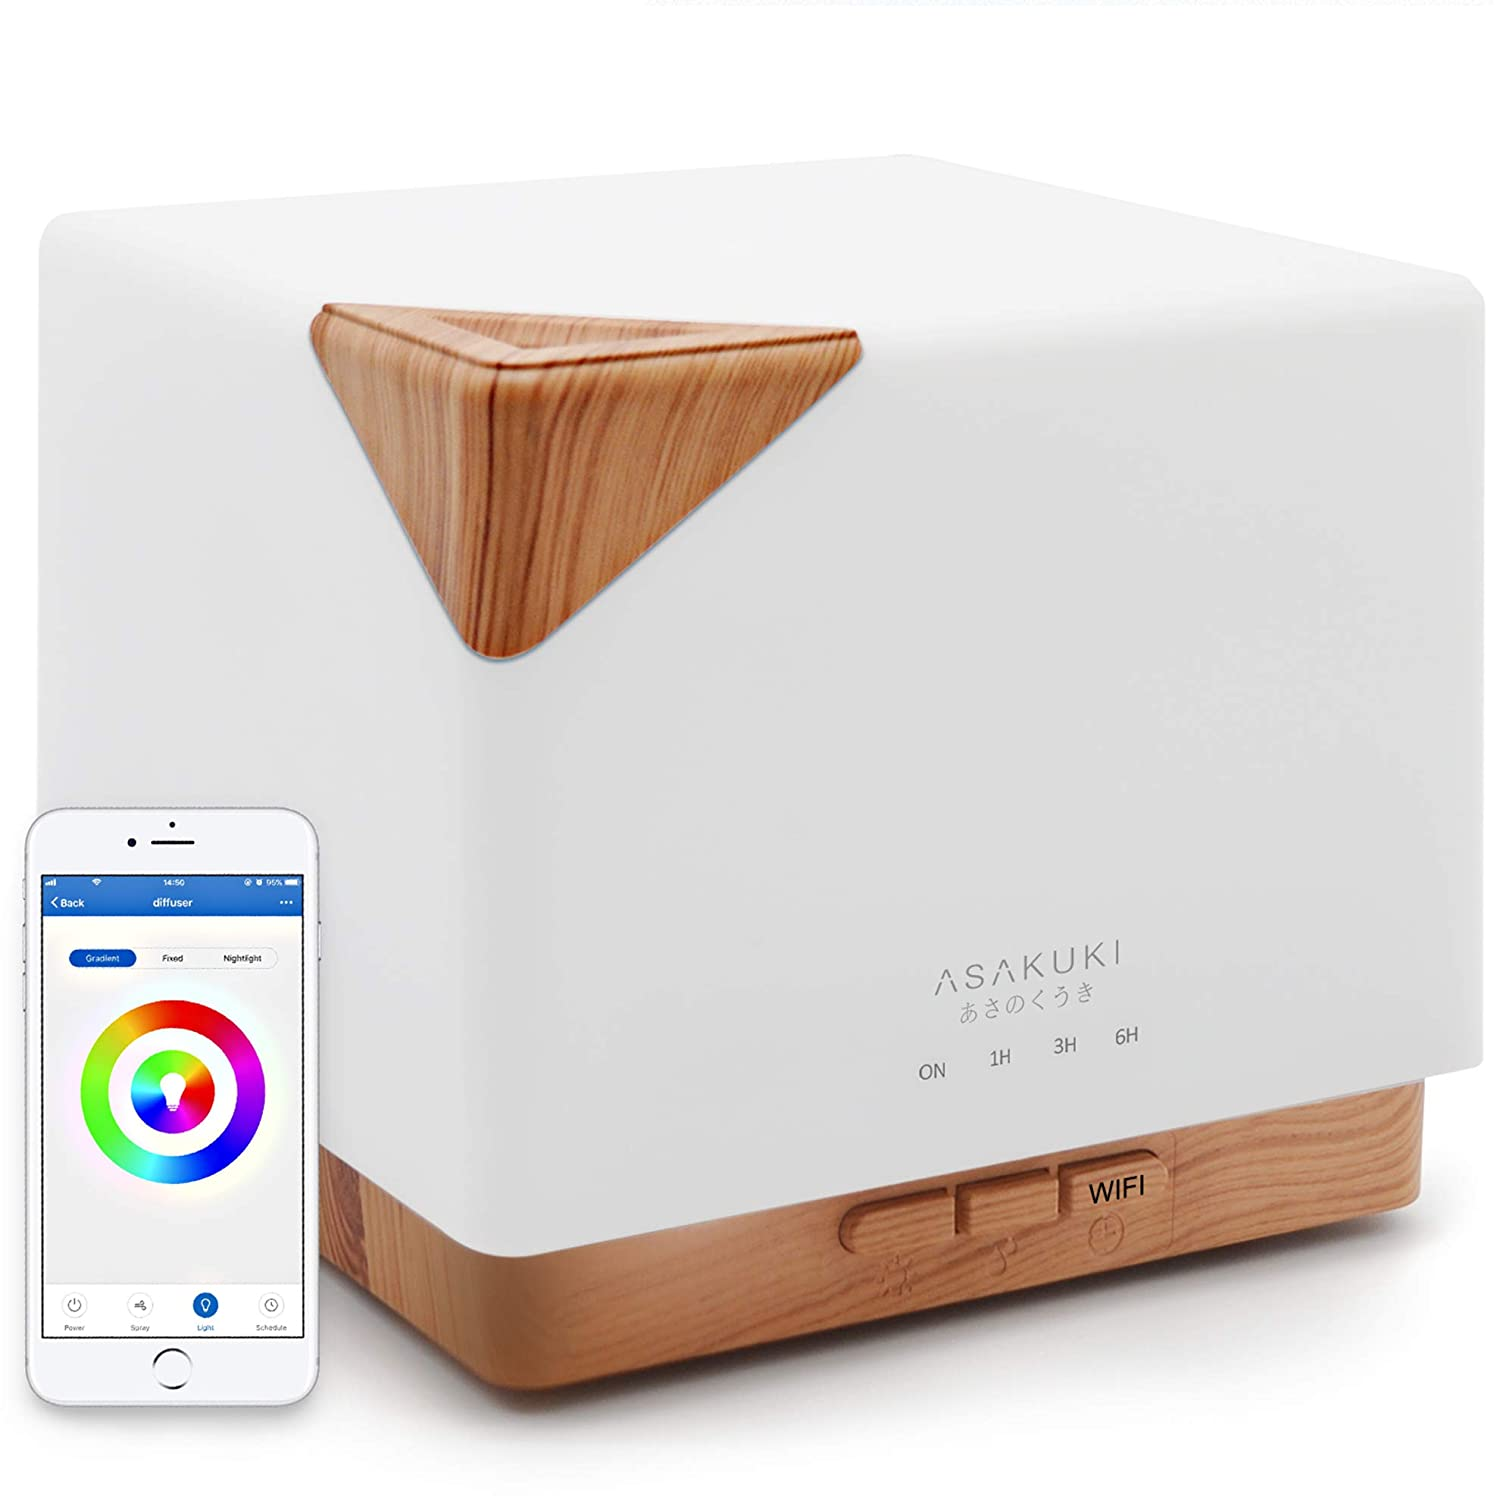 ASAKUKI Smart Wi-Fi Essential Oil Diffuser- App Control Compatible with Alexa, 700ml Aroma Humidifier for Relaxing Atmosphere in Bedroom and Office-Better Sleeping&Breathing